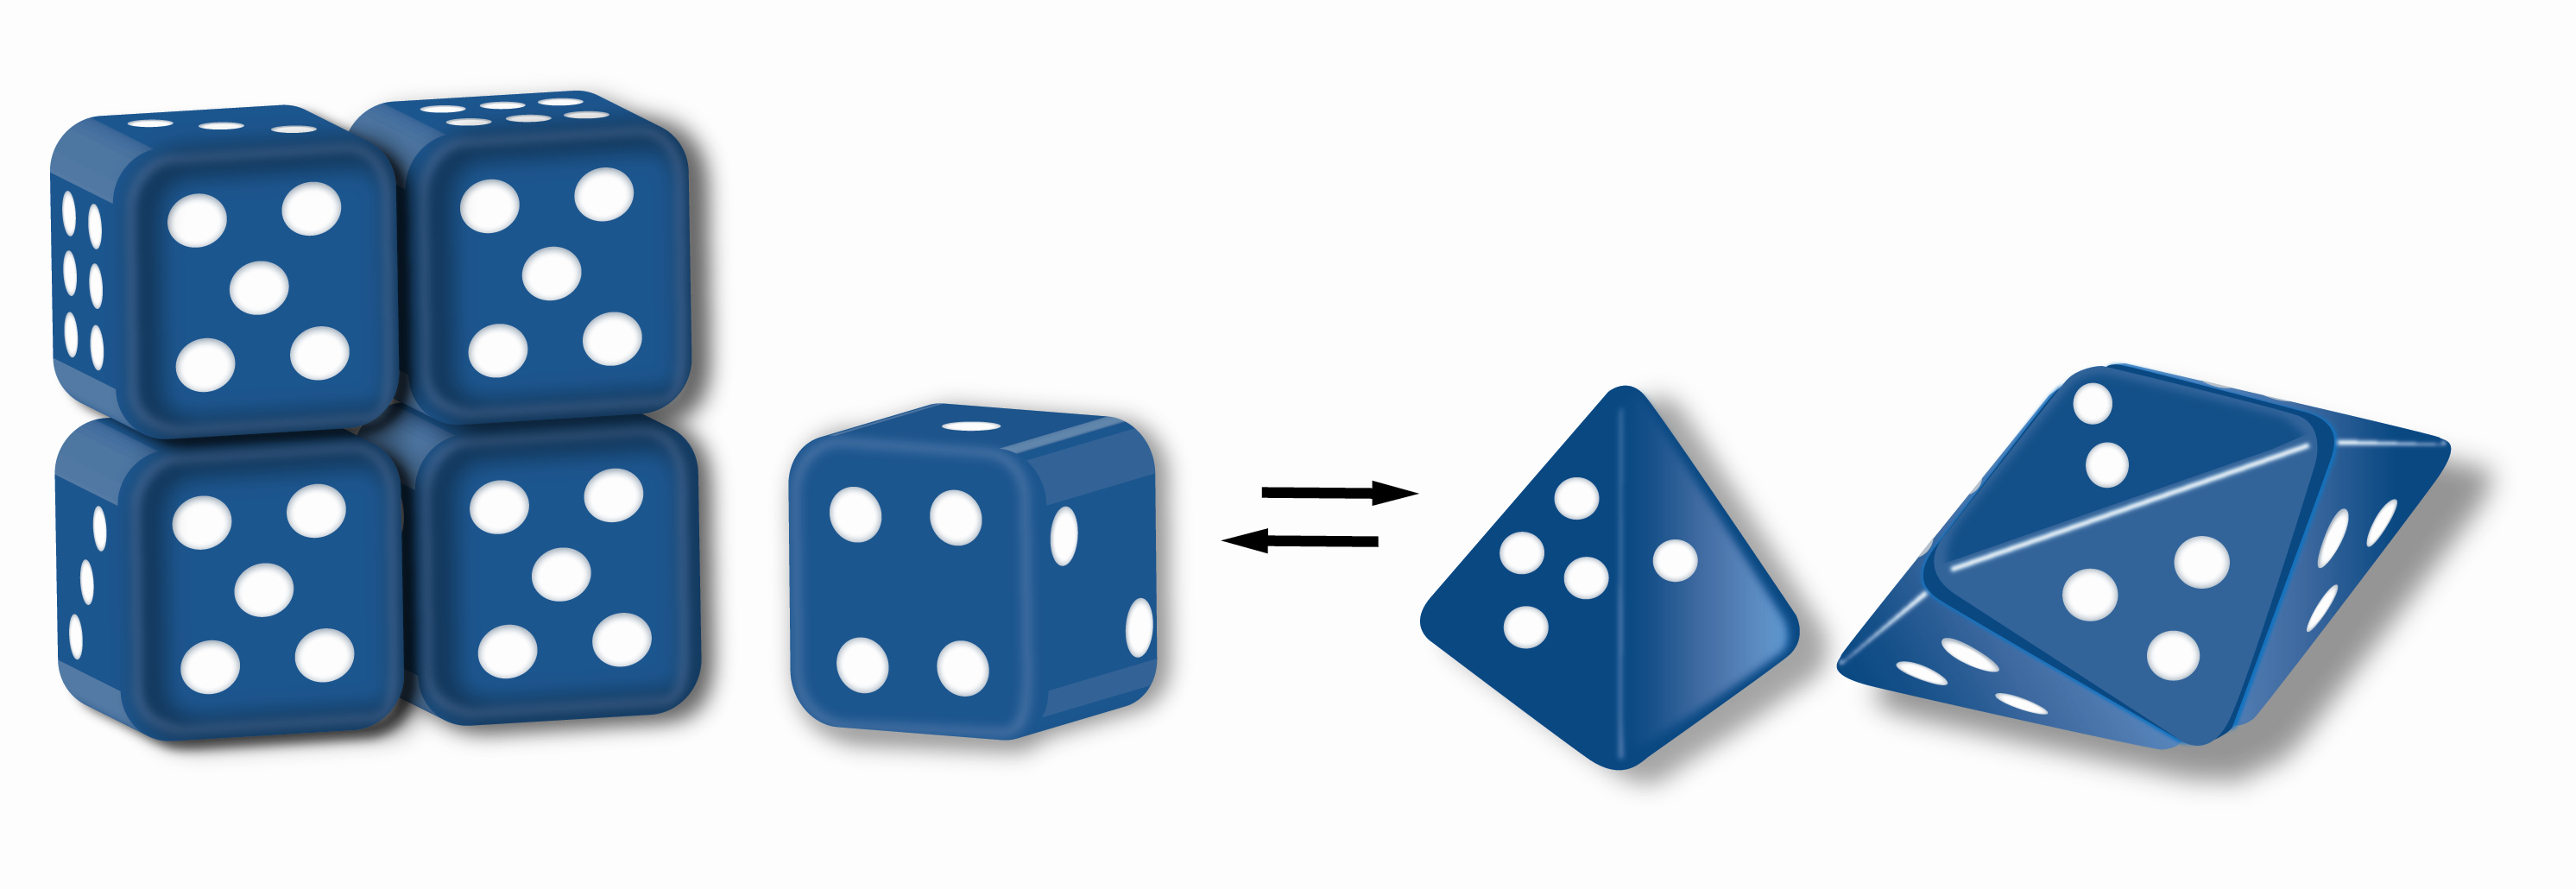 File Morpheein Dice Png Wikimedia Commons